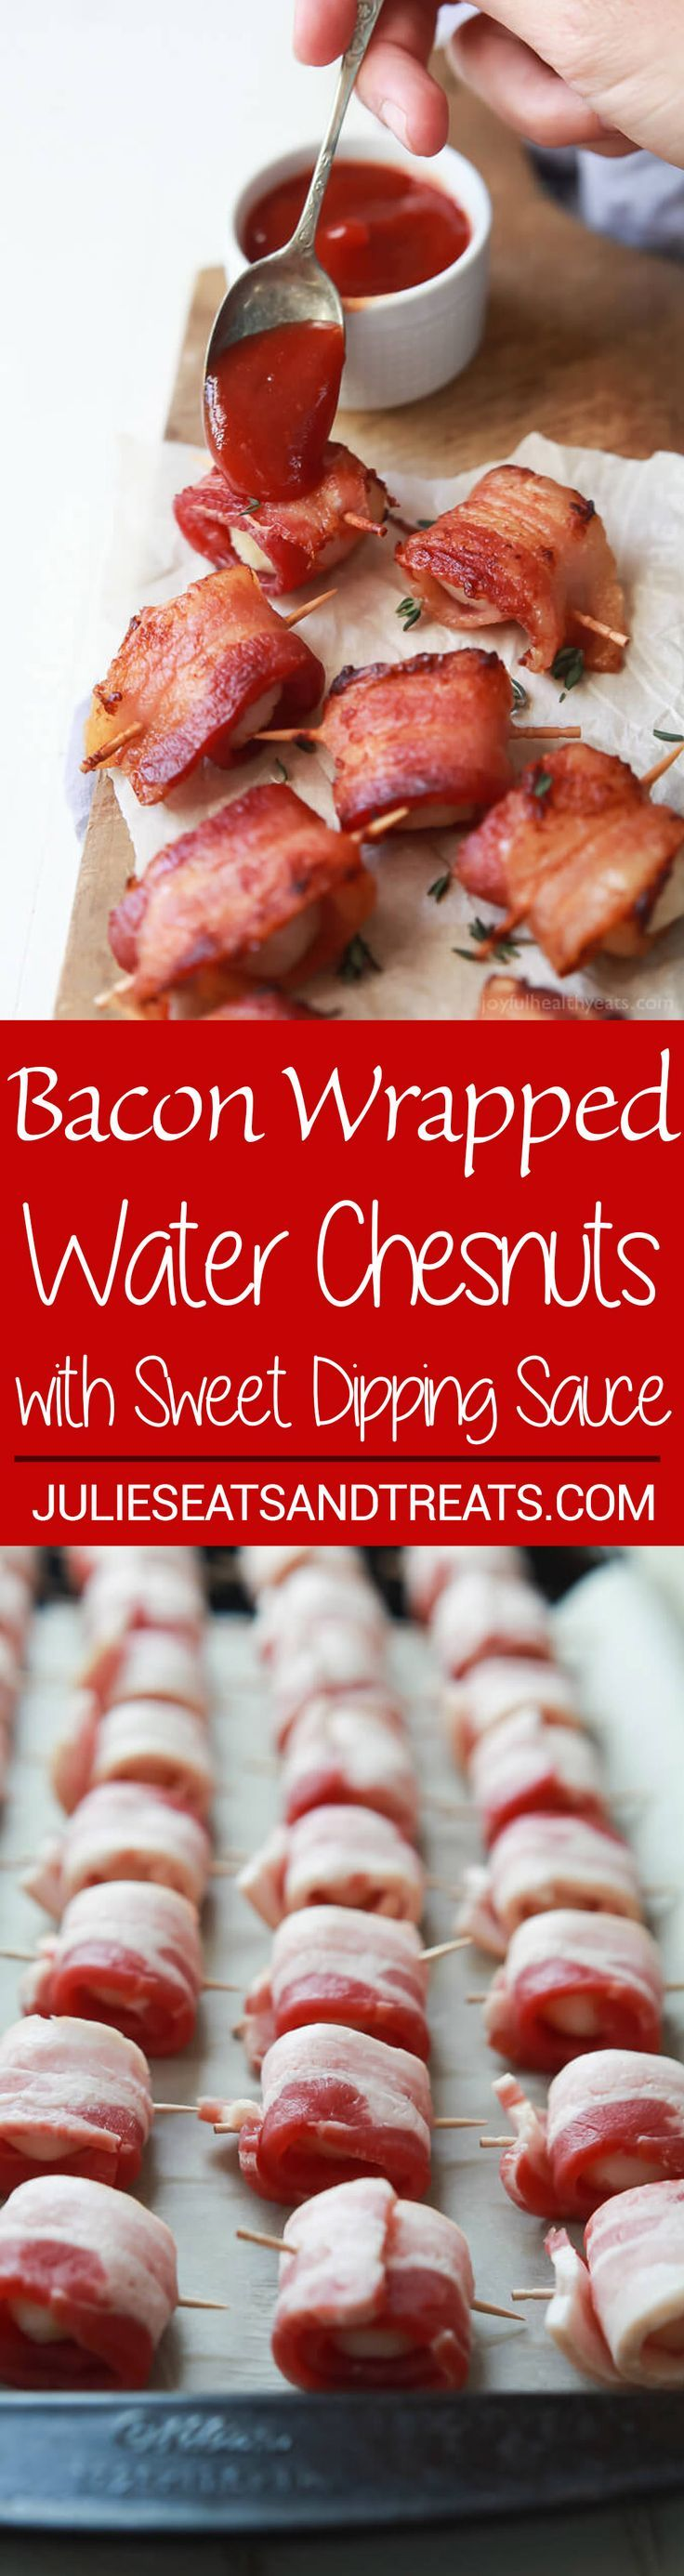 Bacon Wrapped Water Chestnuts Recipe served with a Sweet Dipping Sauce. This appetizer is sweet, salty, out of control delicious and so easy to make! Perfect for the holidays!